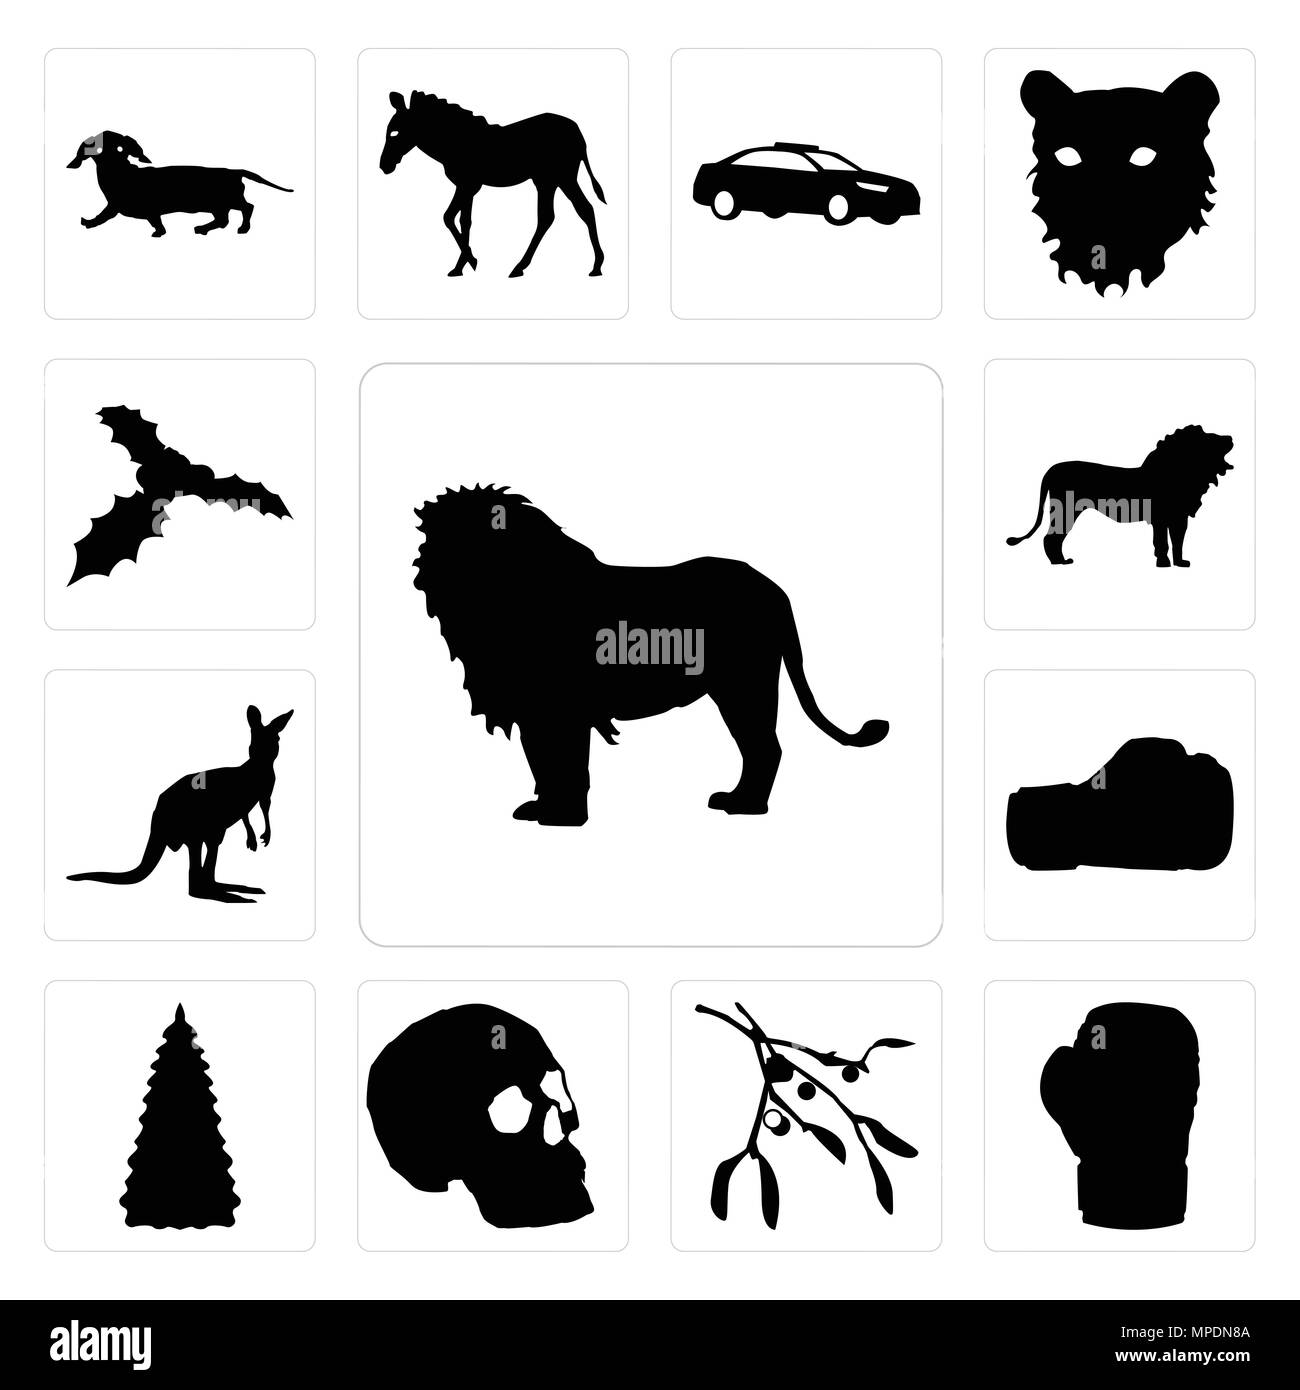 Set Of 13 Simple Editable Icons Such As Lion Outline Images On White Background Boxing Glove Mistletoe Background Can Be Used For Mobile Web Ui Stock Vector Image Art Alamy Click the sitting lion outline coloring pages to view printable version or color it online (compatible with ipad and android tablets). alamy